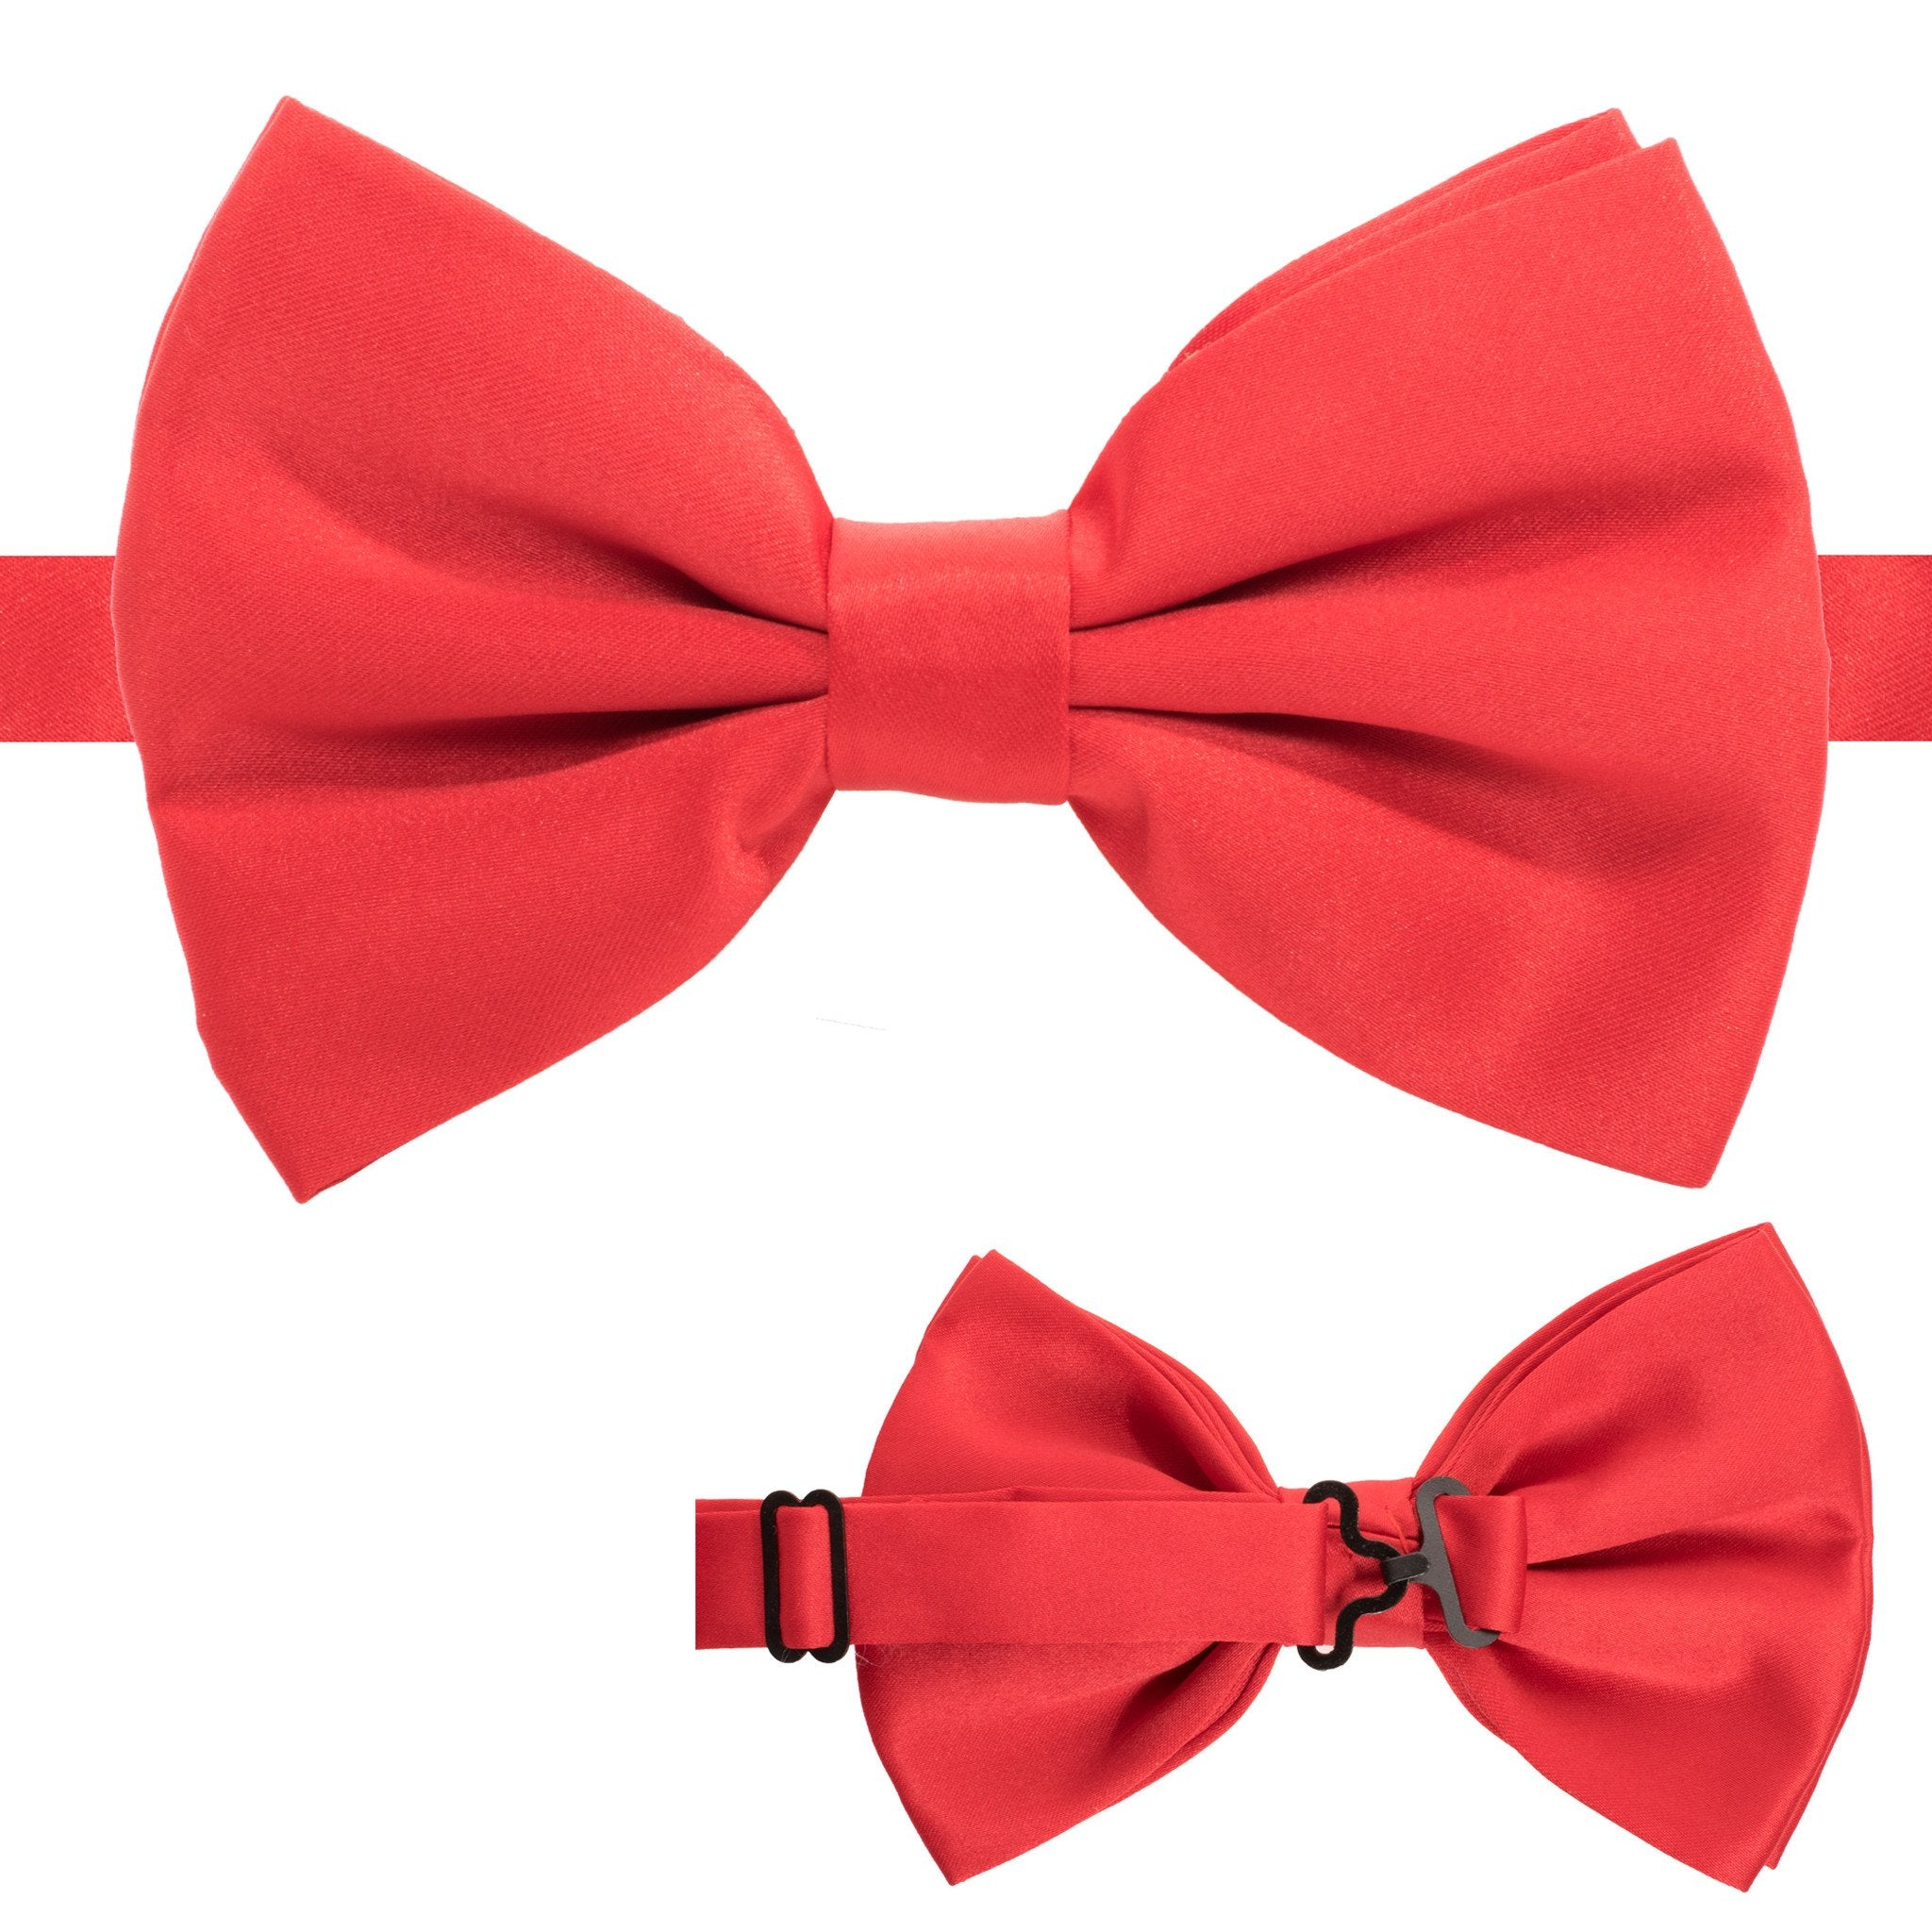 Axis Red Adjustable Satin Bowtie - Giorgio's Menswear